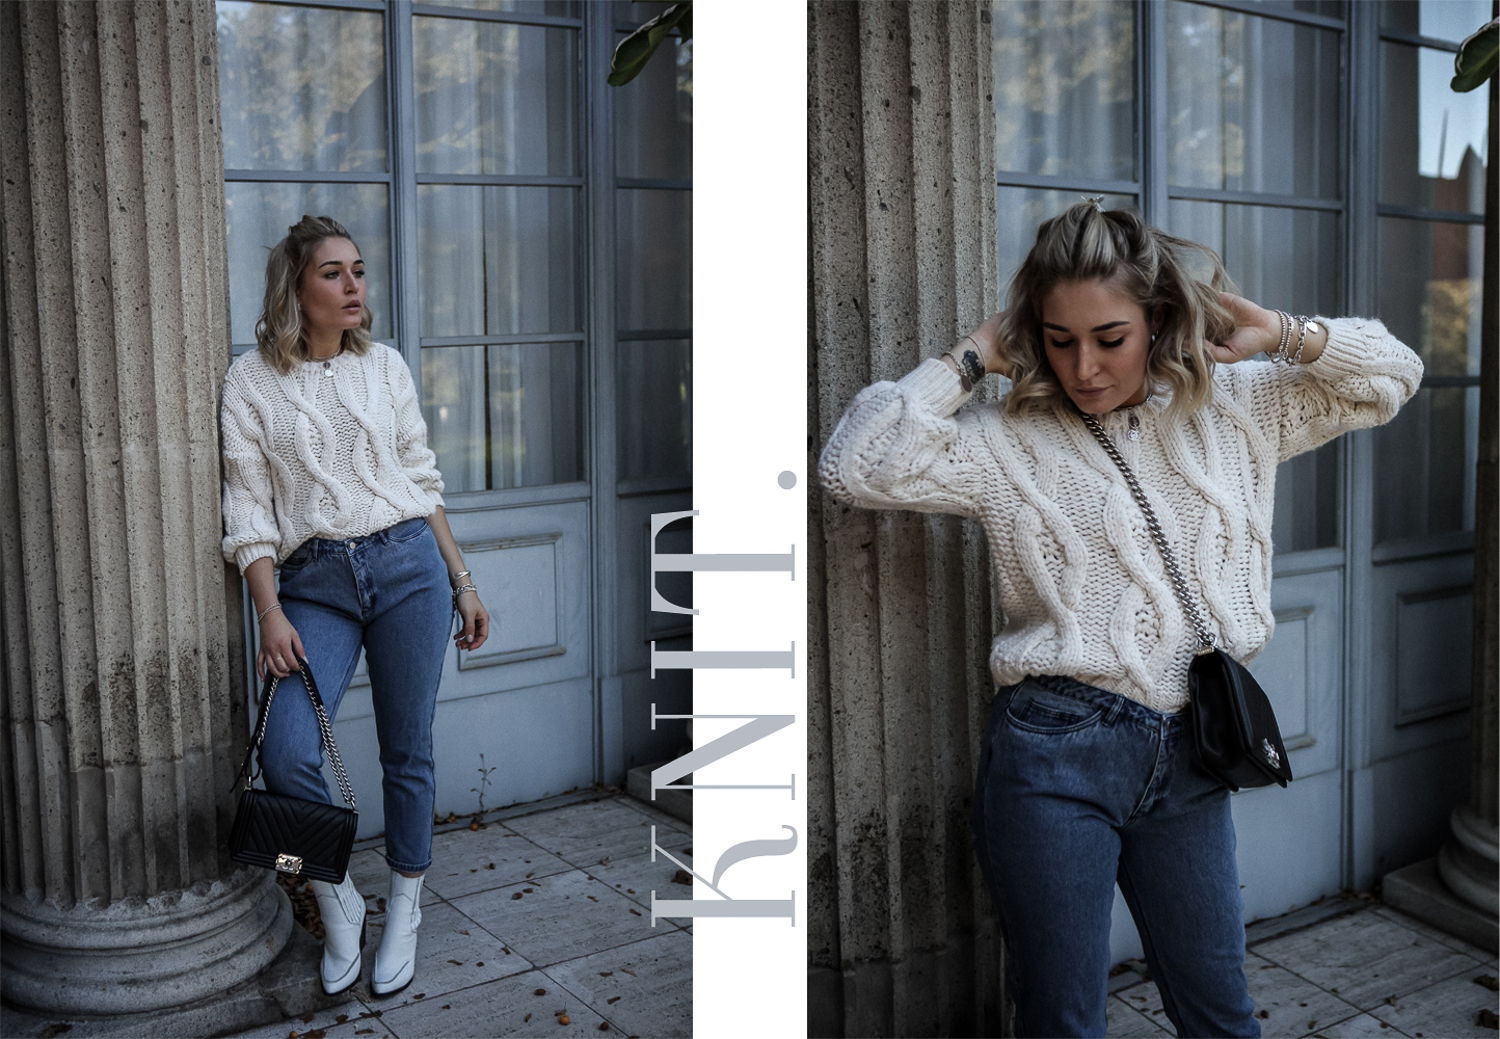 Lauralamode Strick Knit Knitwear Strickpullover Outit Ootd Mango Nakd Chanel Only Look Streetstyle Winter Berlin Fashionblogger Blogger Munich4